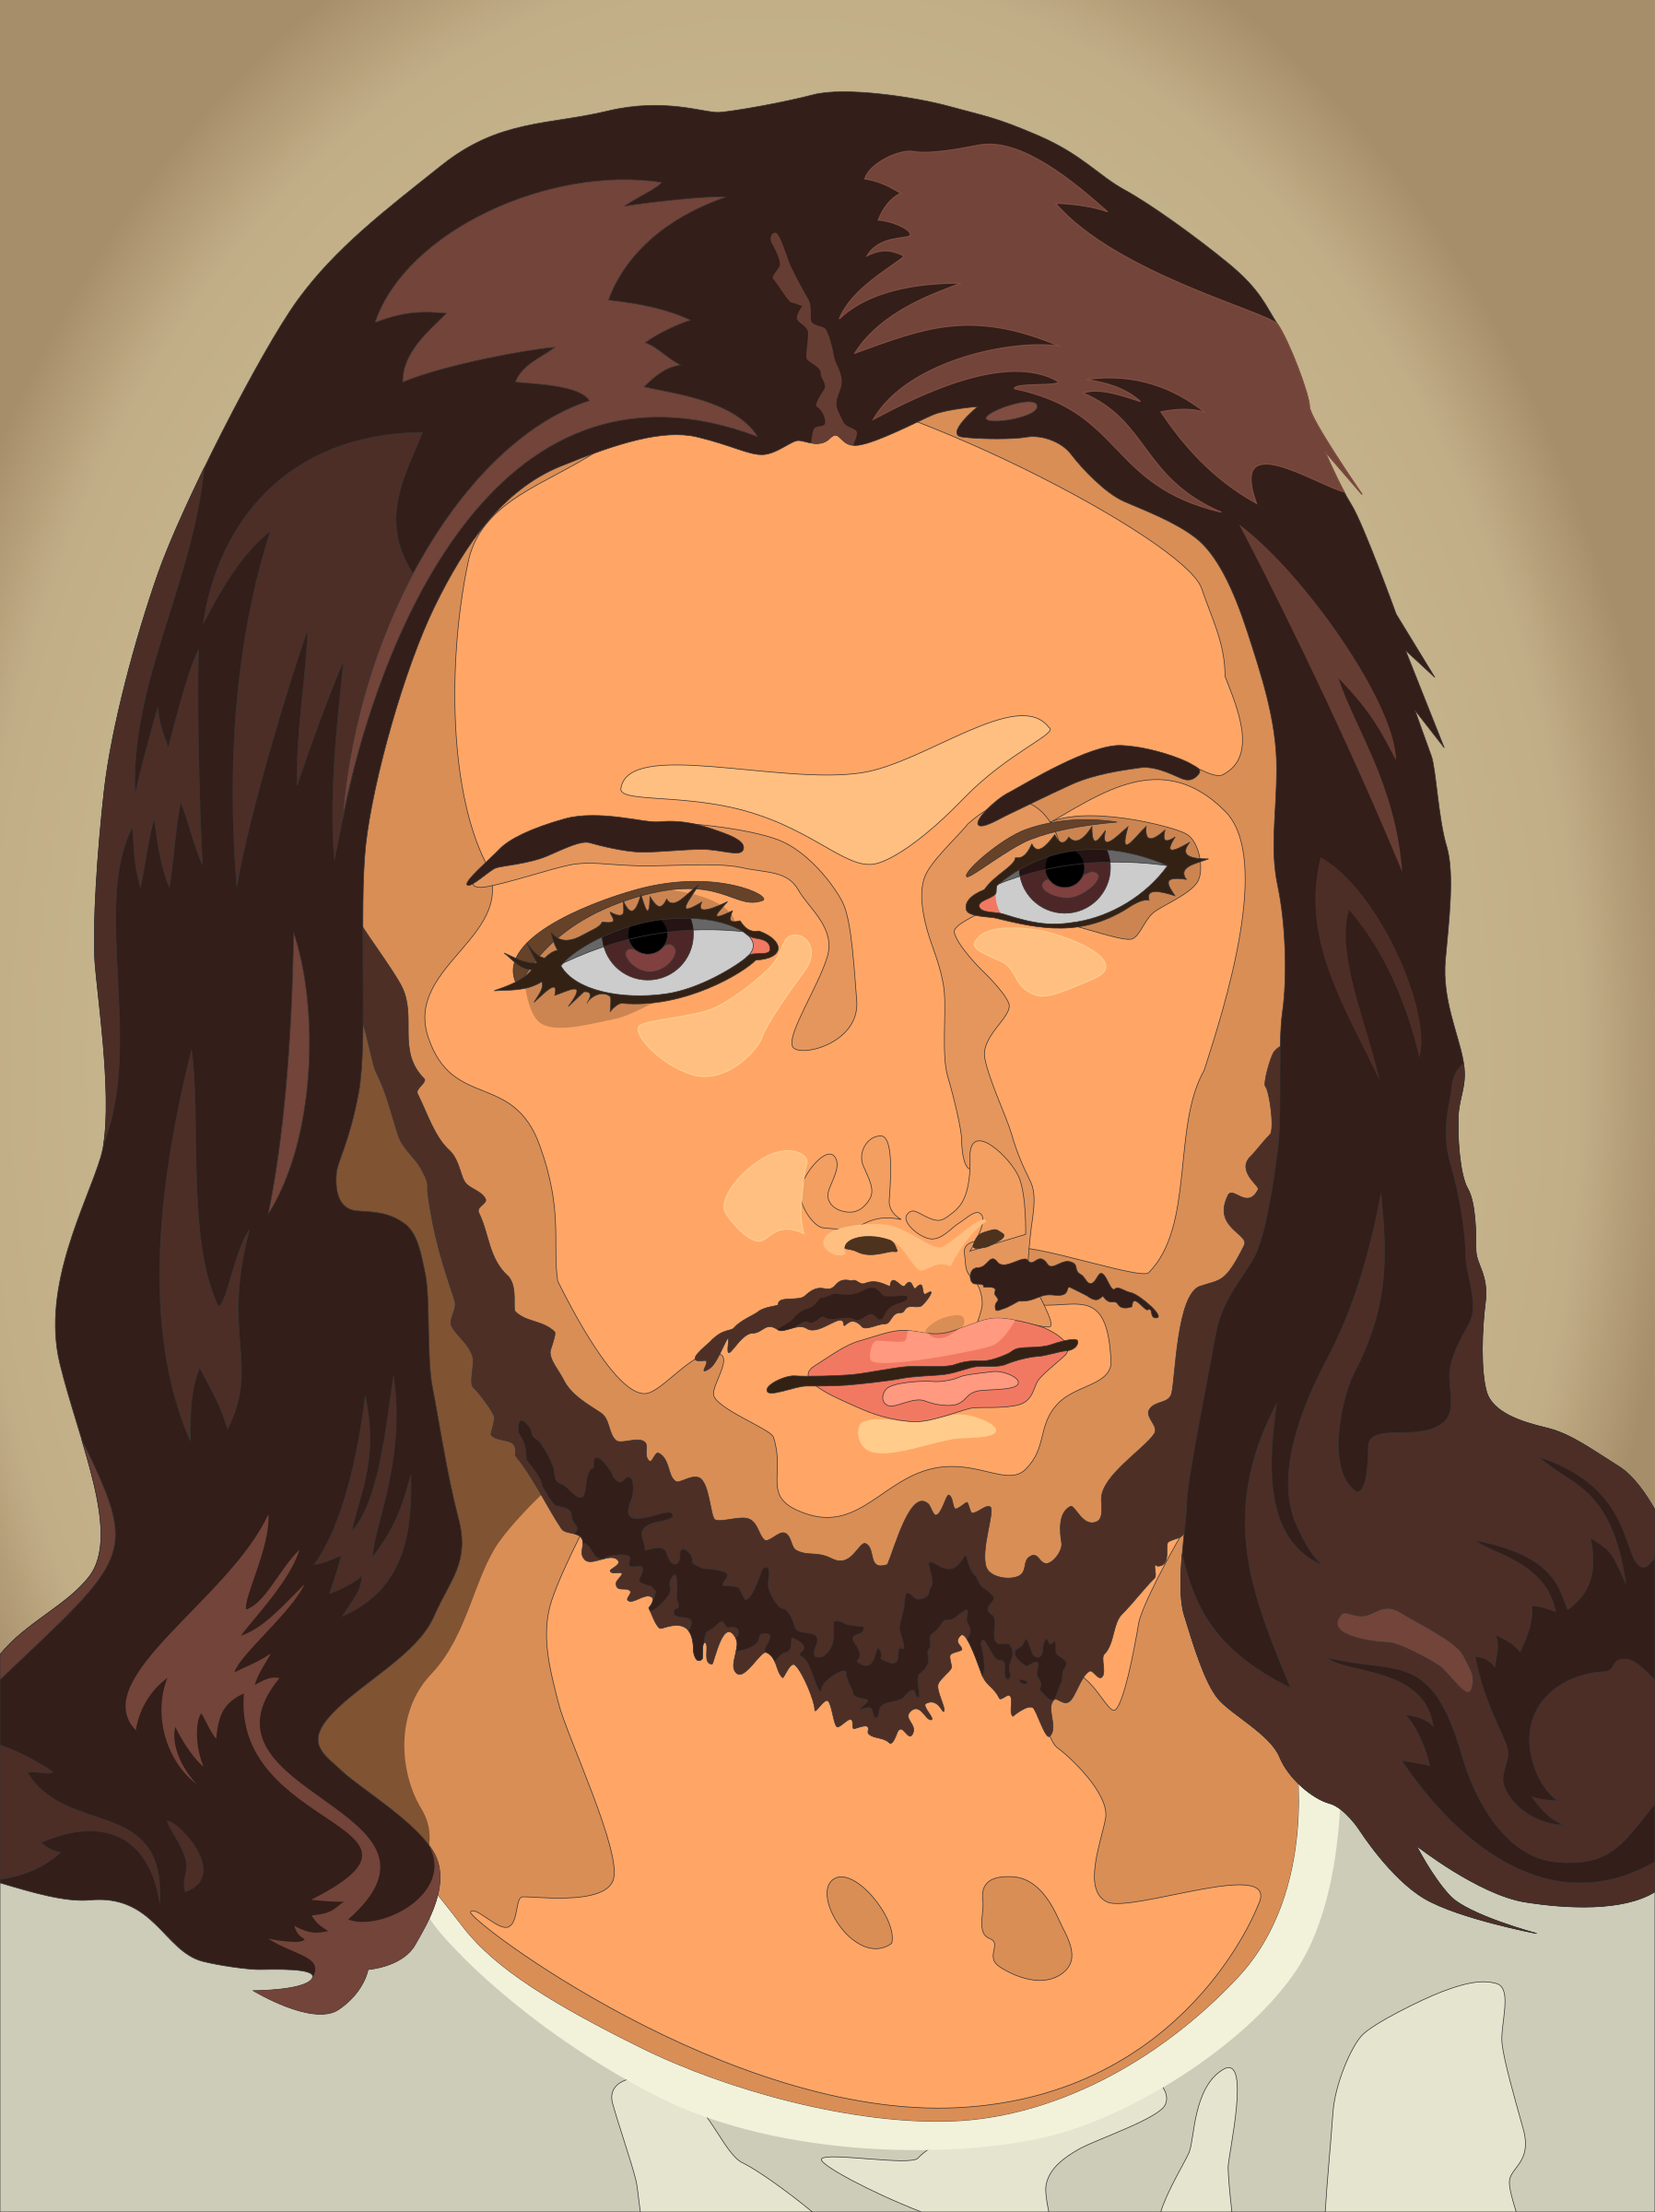 Jesus Christ by gustavorezende